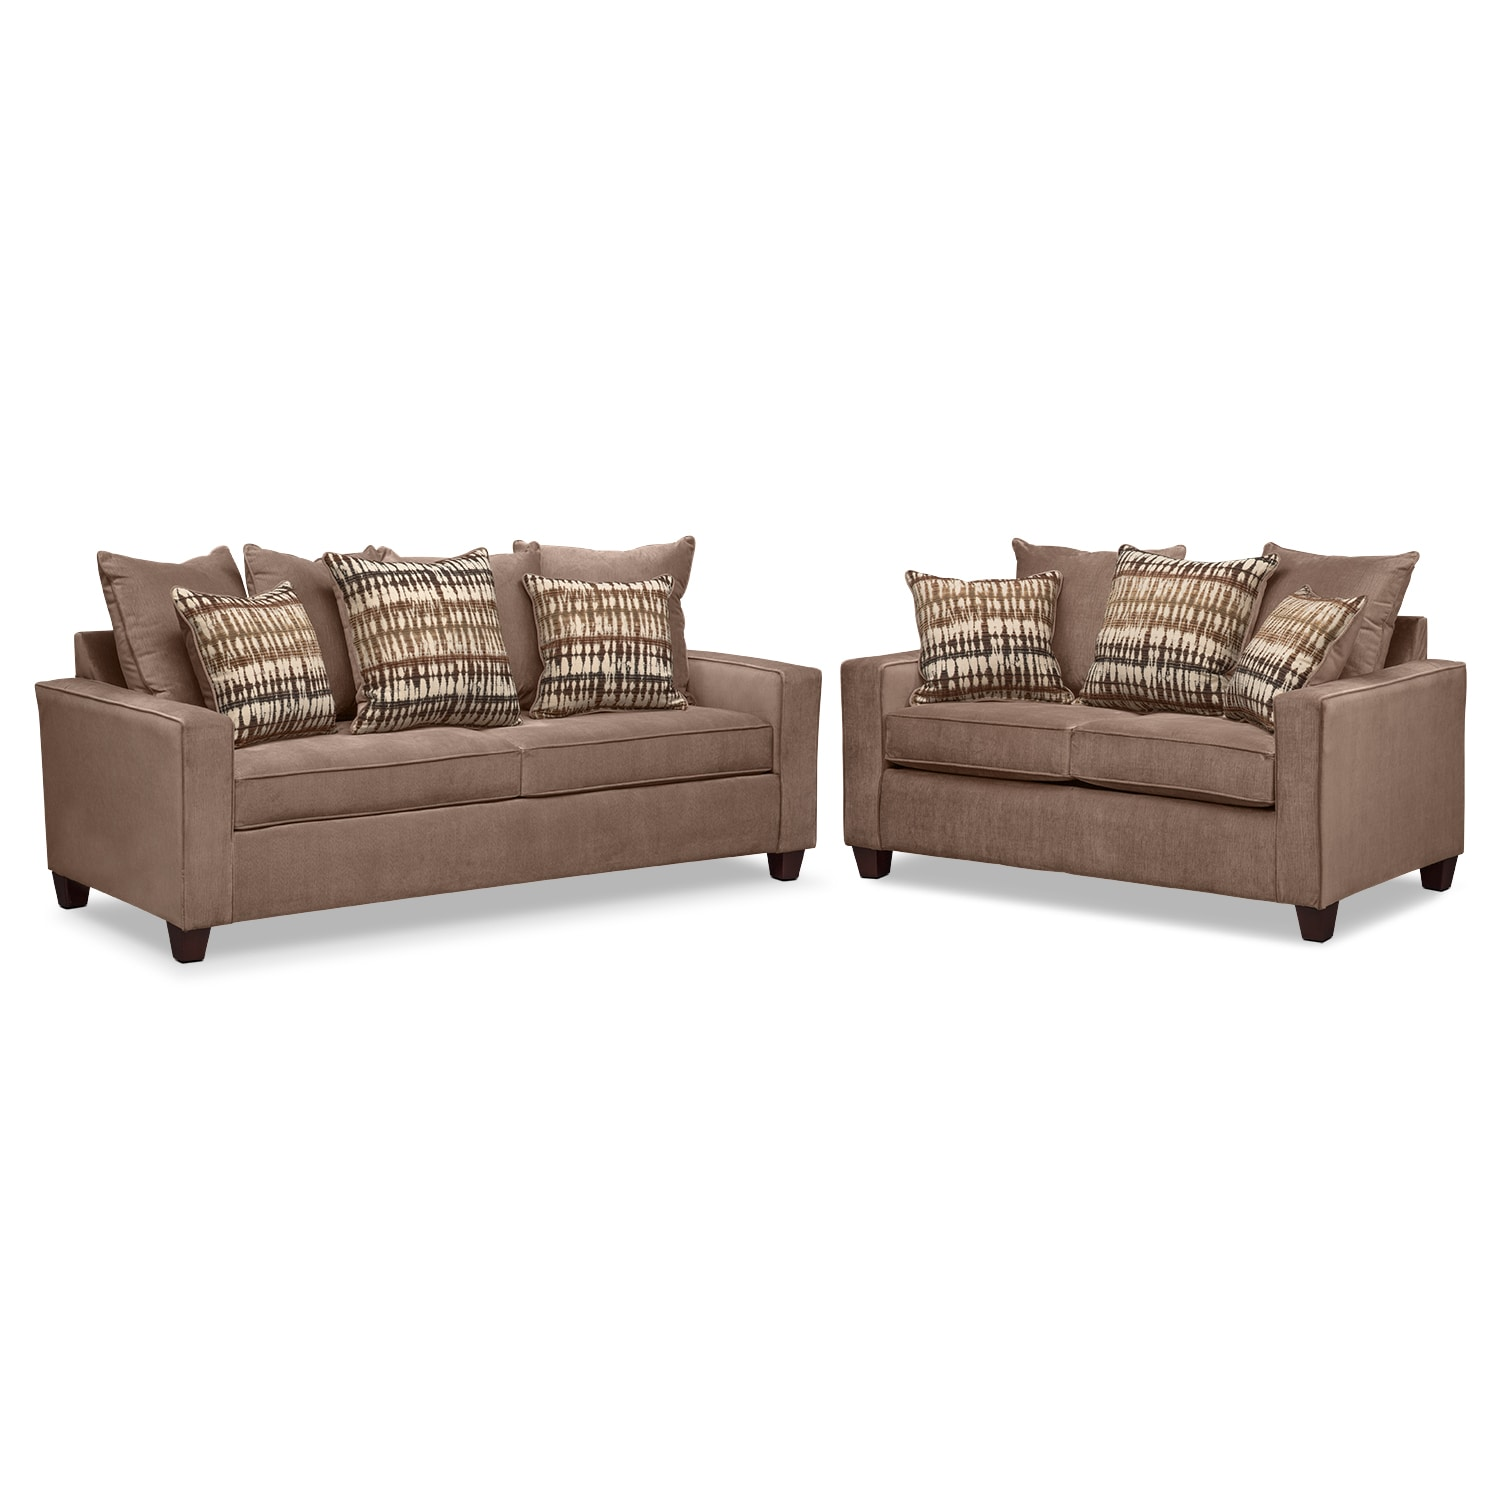 Bryden queen innerspring sleeper sofa and loveseat set for Sectional sofa with recliner and queen sleeper